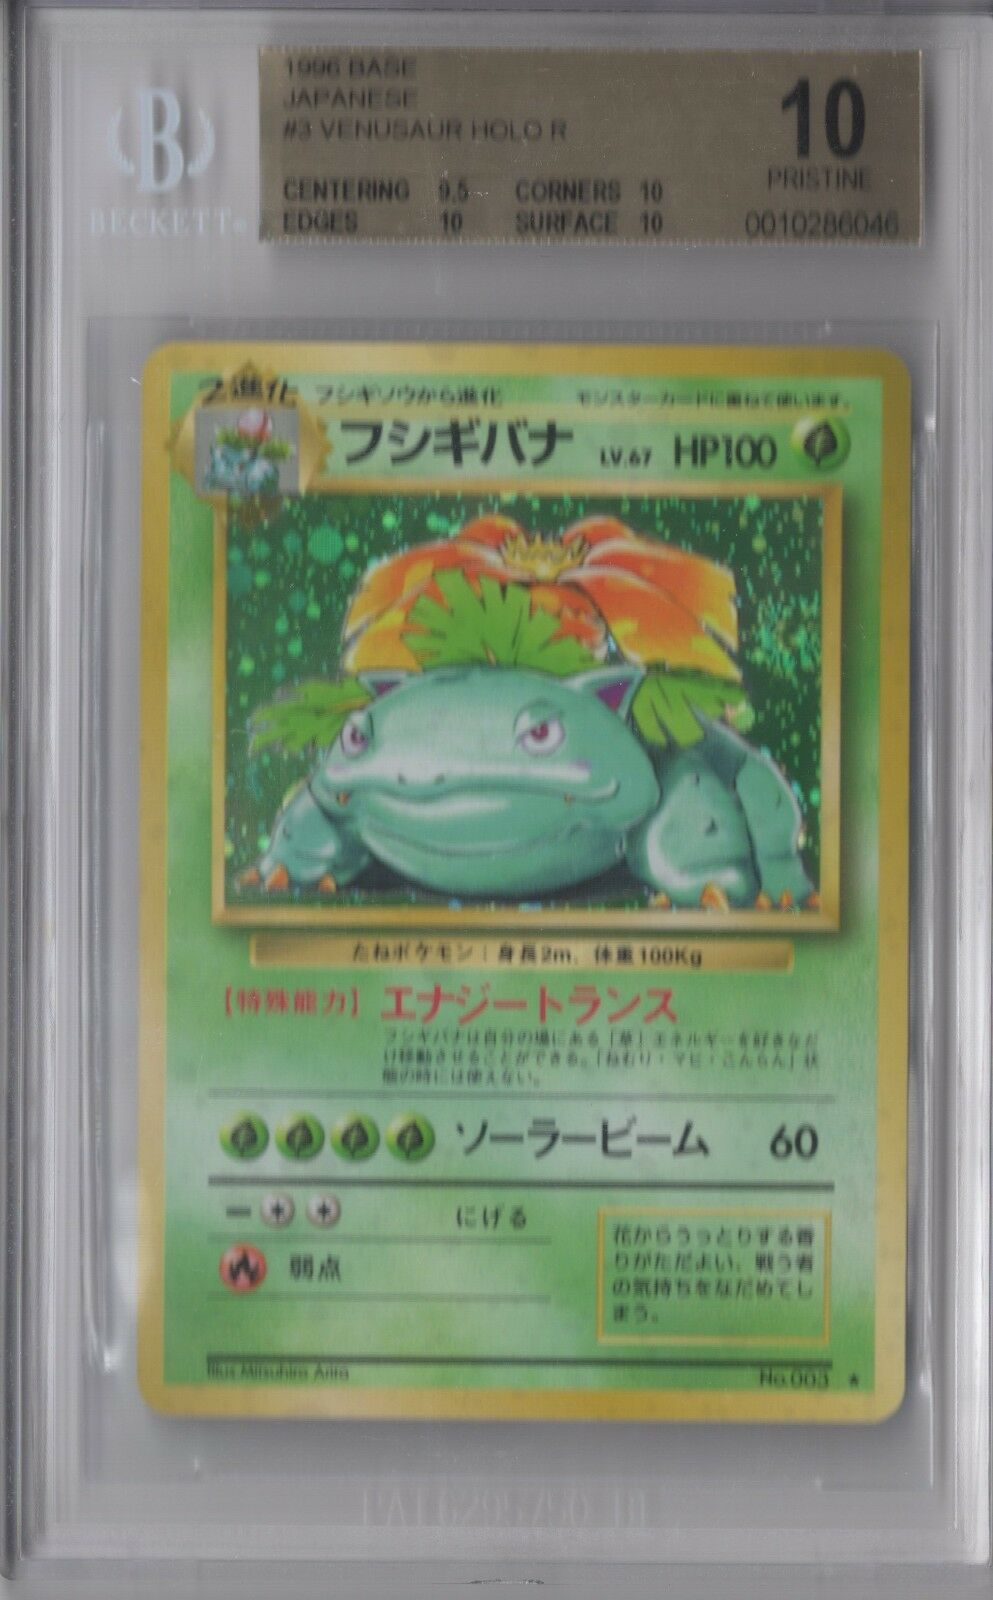 BGS 10 10 10 w 9.5 PRISTINE VENUSAUR 1996 Pokemon Base Set Japanese HOLO RARE POP 1 5adadb